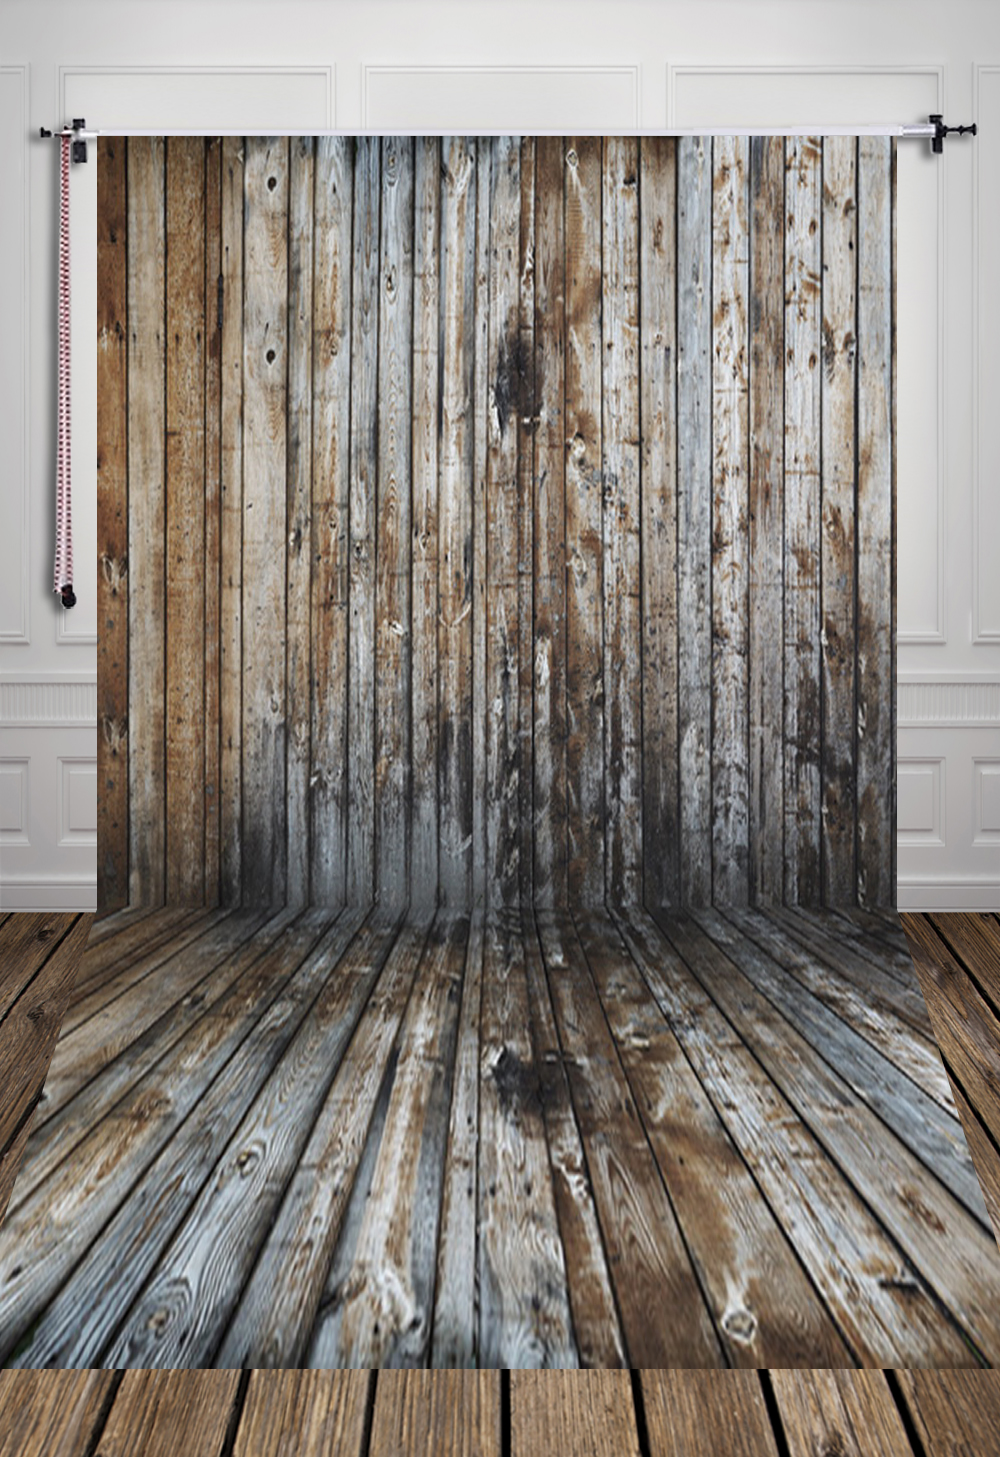 Weathered plank wood floor printed photography backdrop background for  adult or studio D 4135-in Background from Consumer Electronics on  Aliexpress.com ... - Weathered Plank Wood Floor Printed Photography Backdrop Background